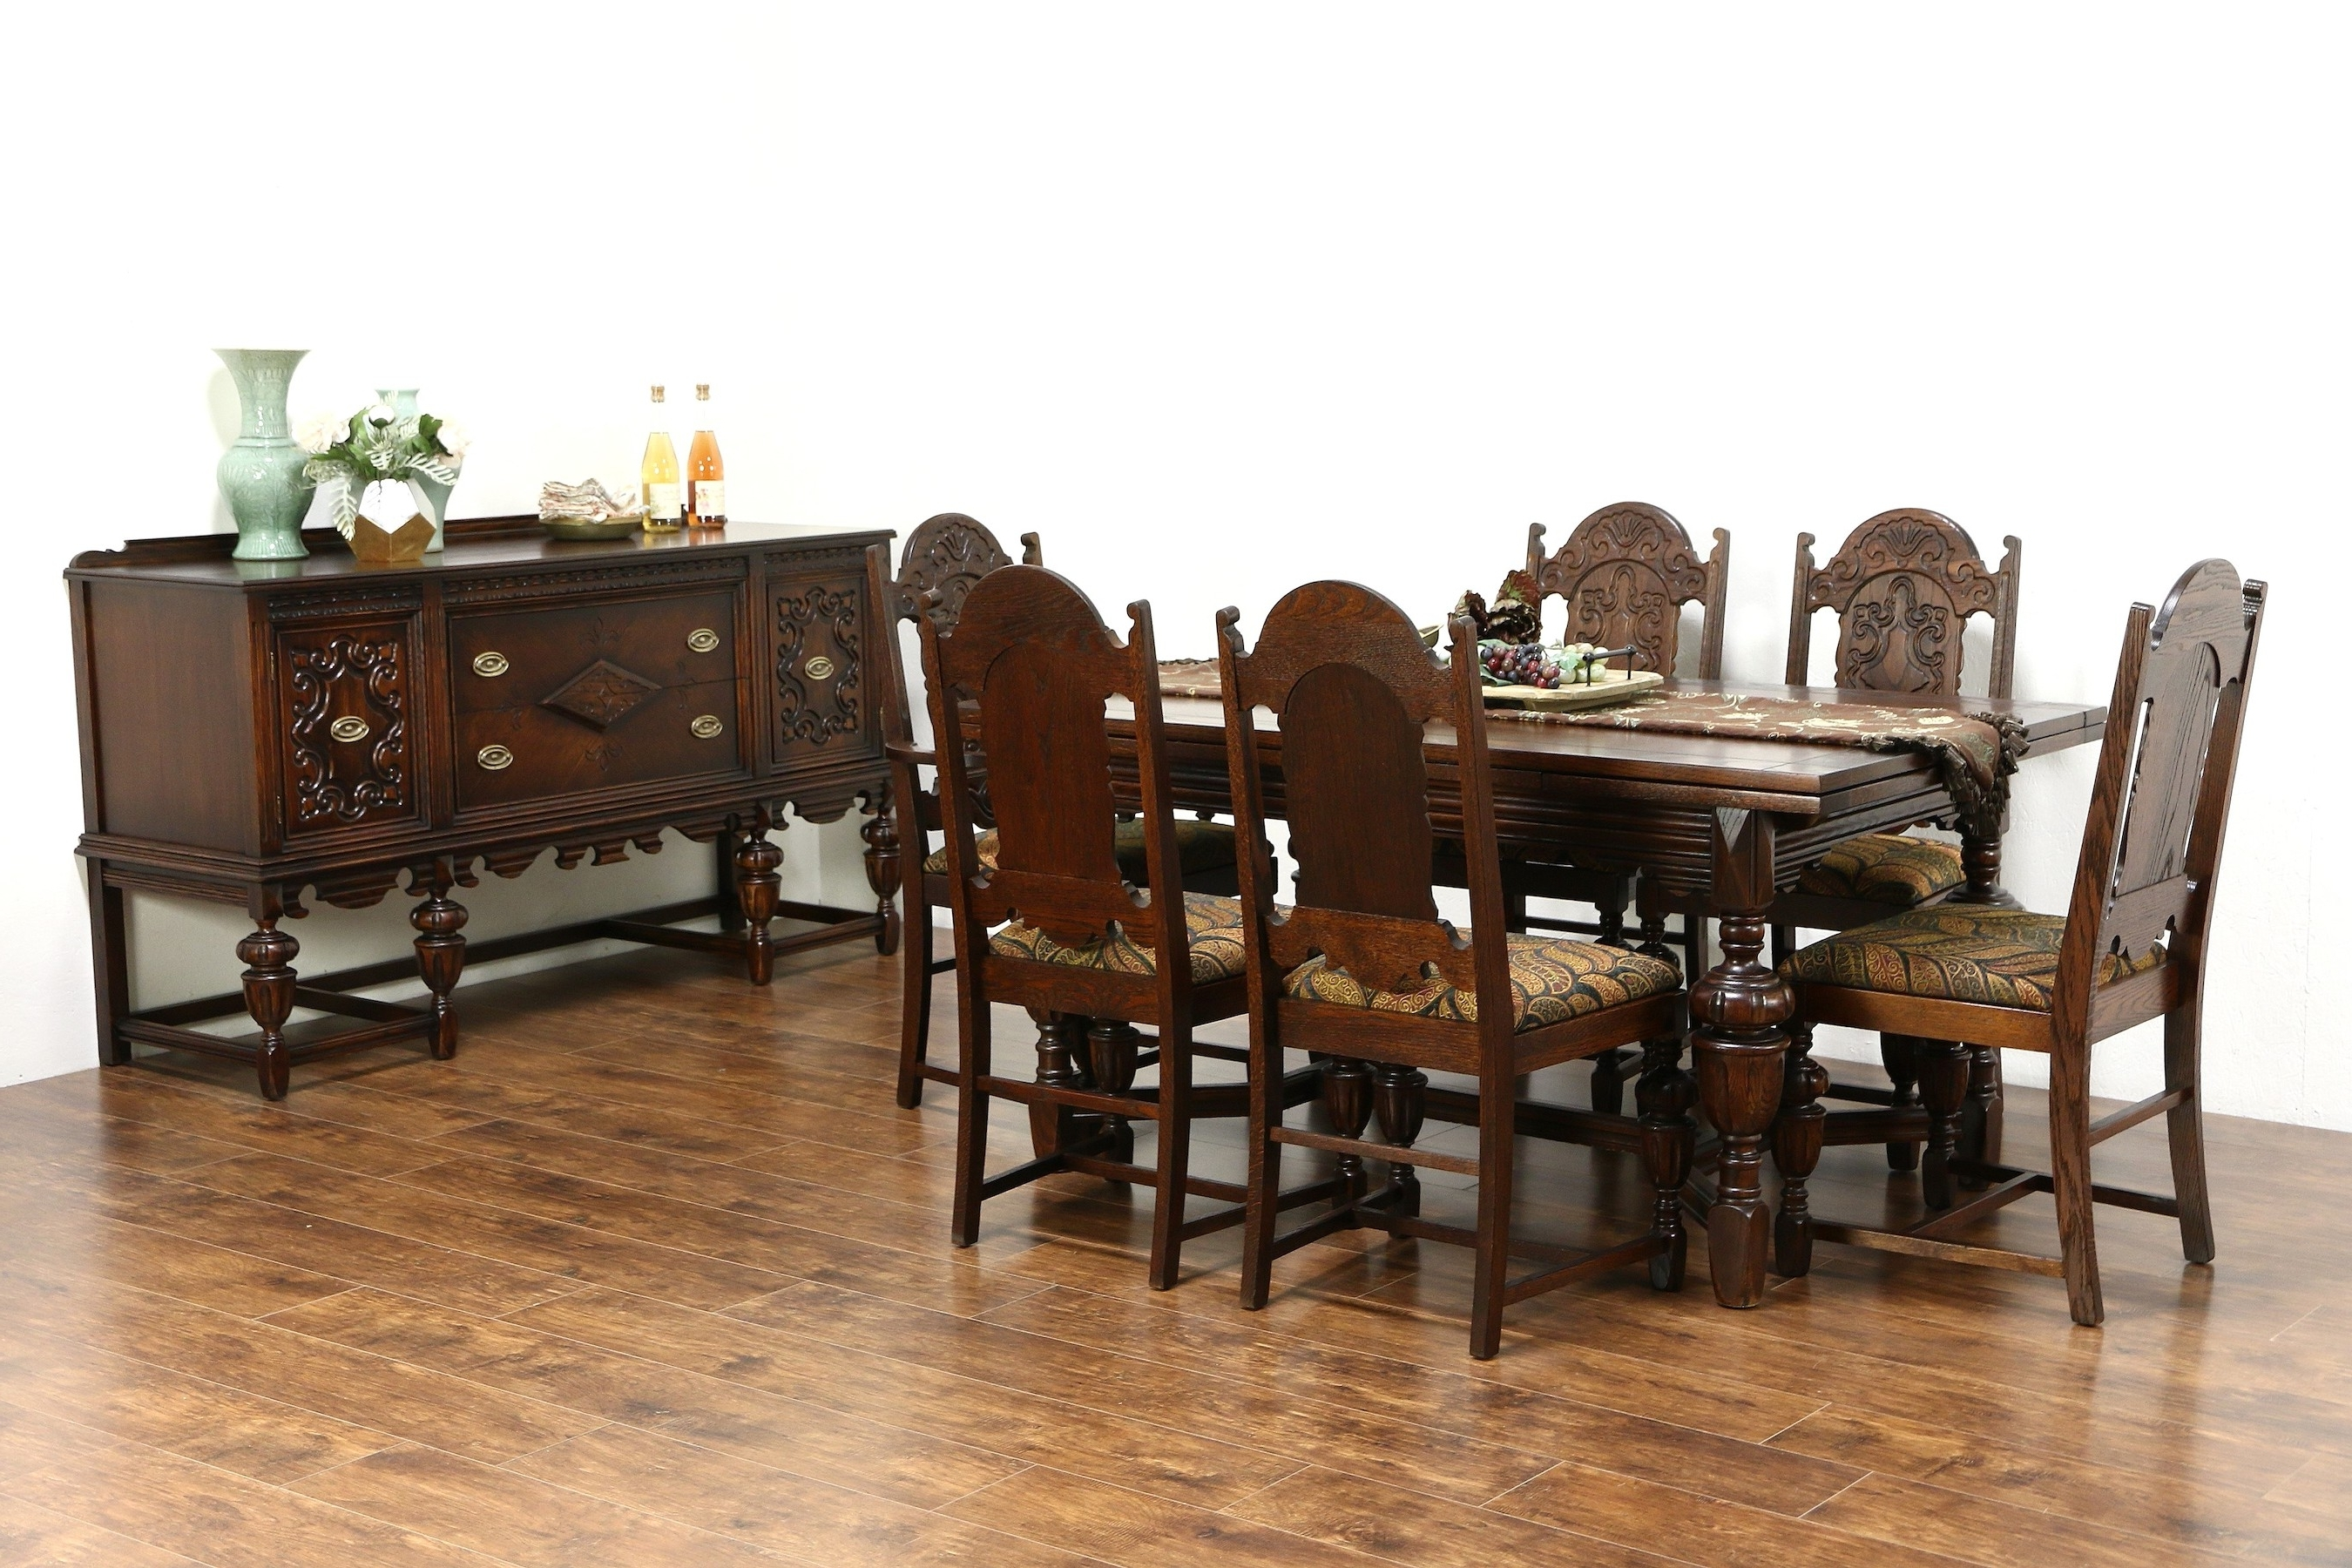 Most Up To Date Oak Dining Set 6 Chairs With Sold – English Tudor 1920 Antique Oak Dining Set, Table, 6 Chairs (View 25 of 25)